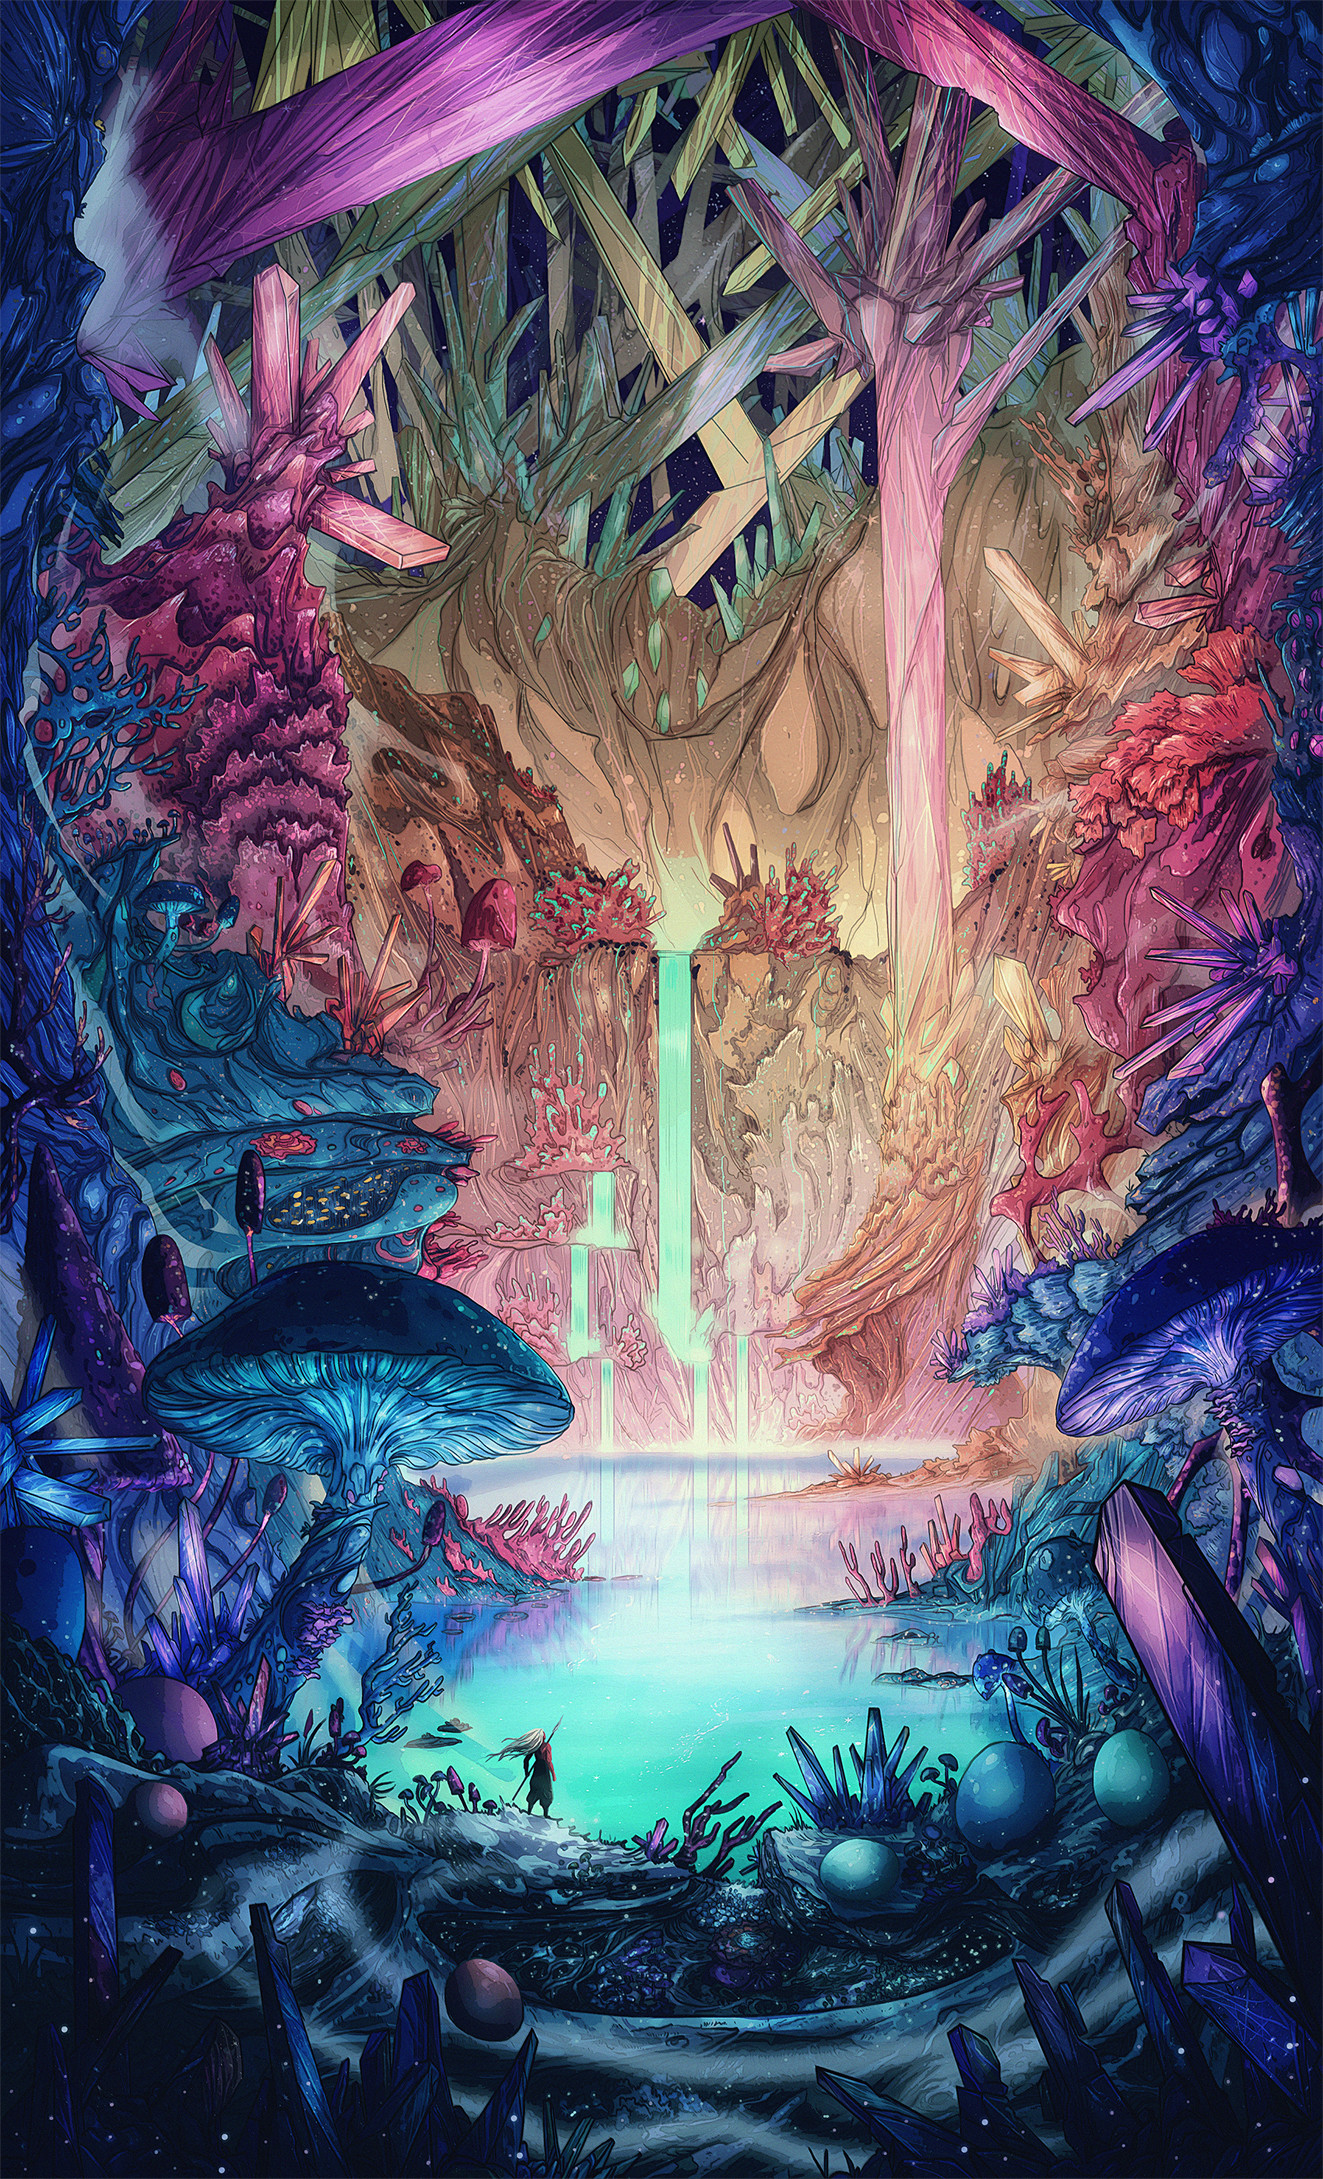 Cool Wallpapers Water Fall Wallpaper Colorful Lake Forest Fantasy Art Crystal